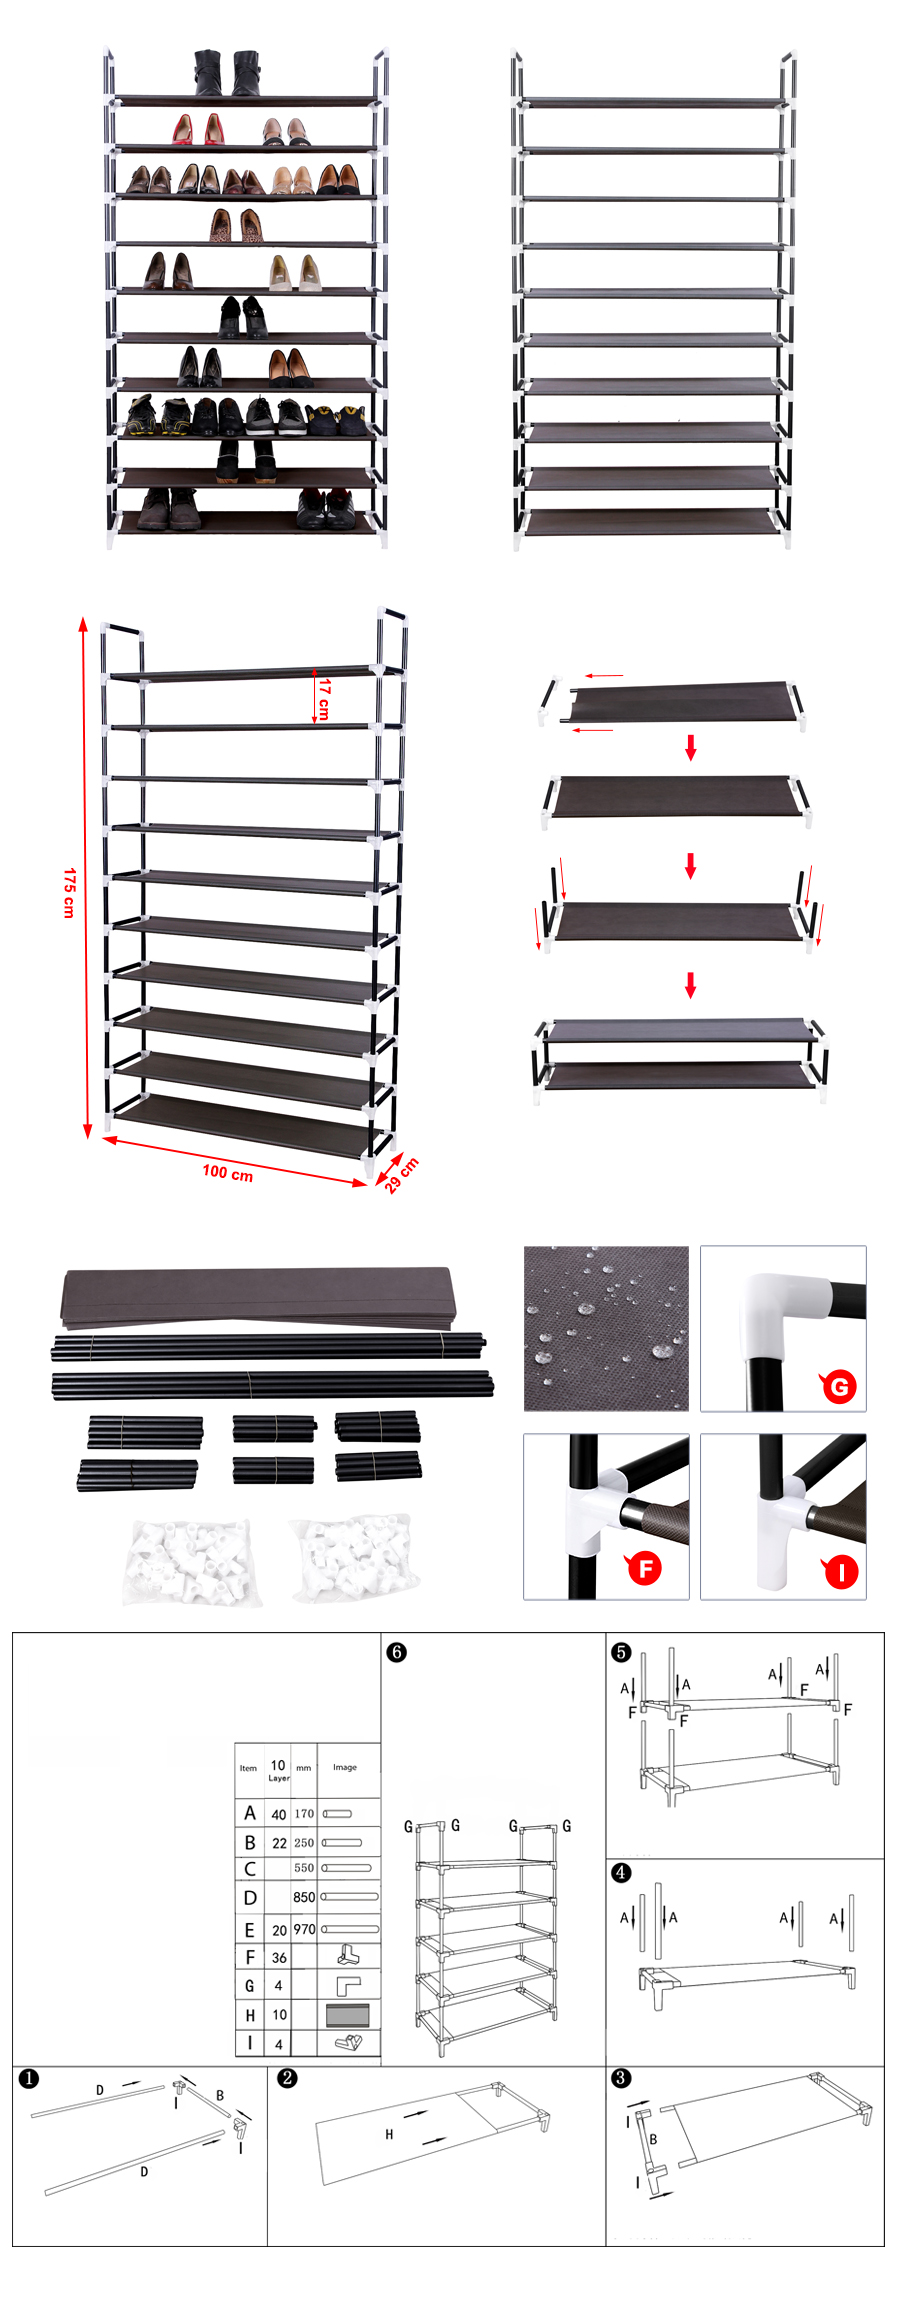 10 schicht schuhschrank schuhablage schuhregal f r 50 paar. Black Bedroom Furniture Sets. Home Design Ideas